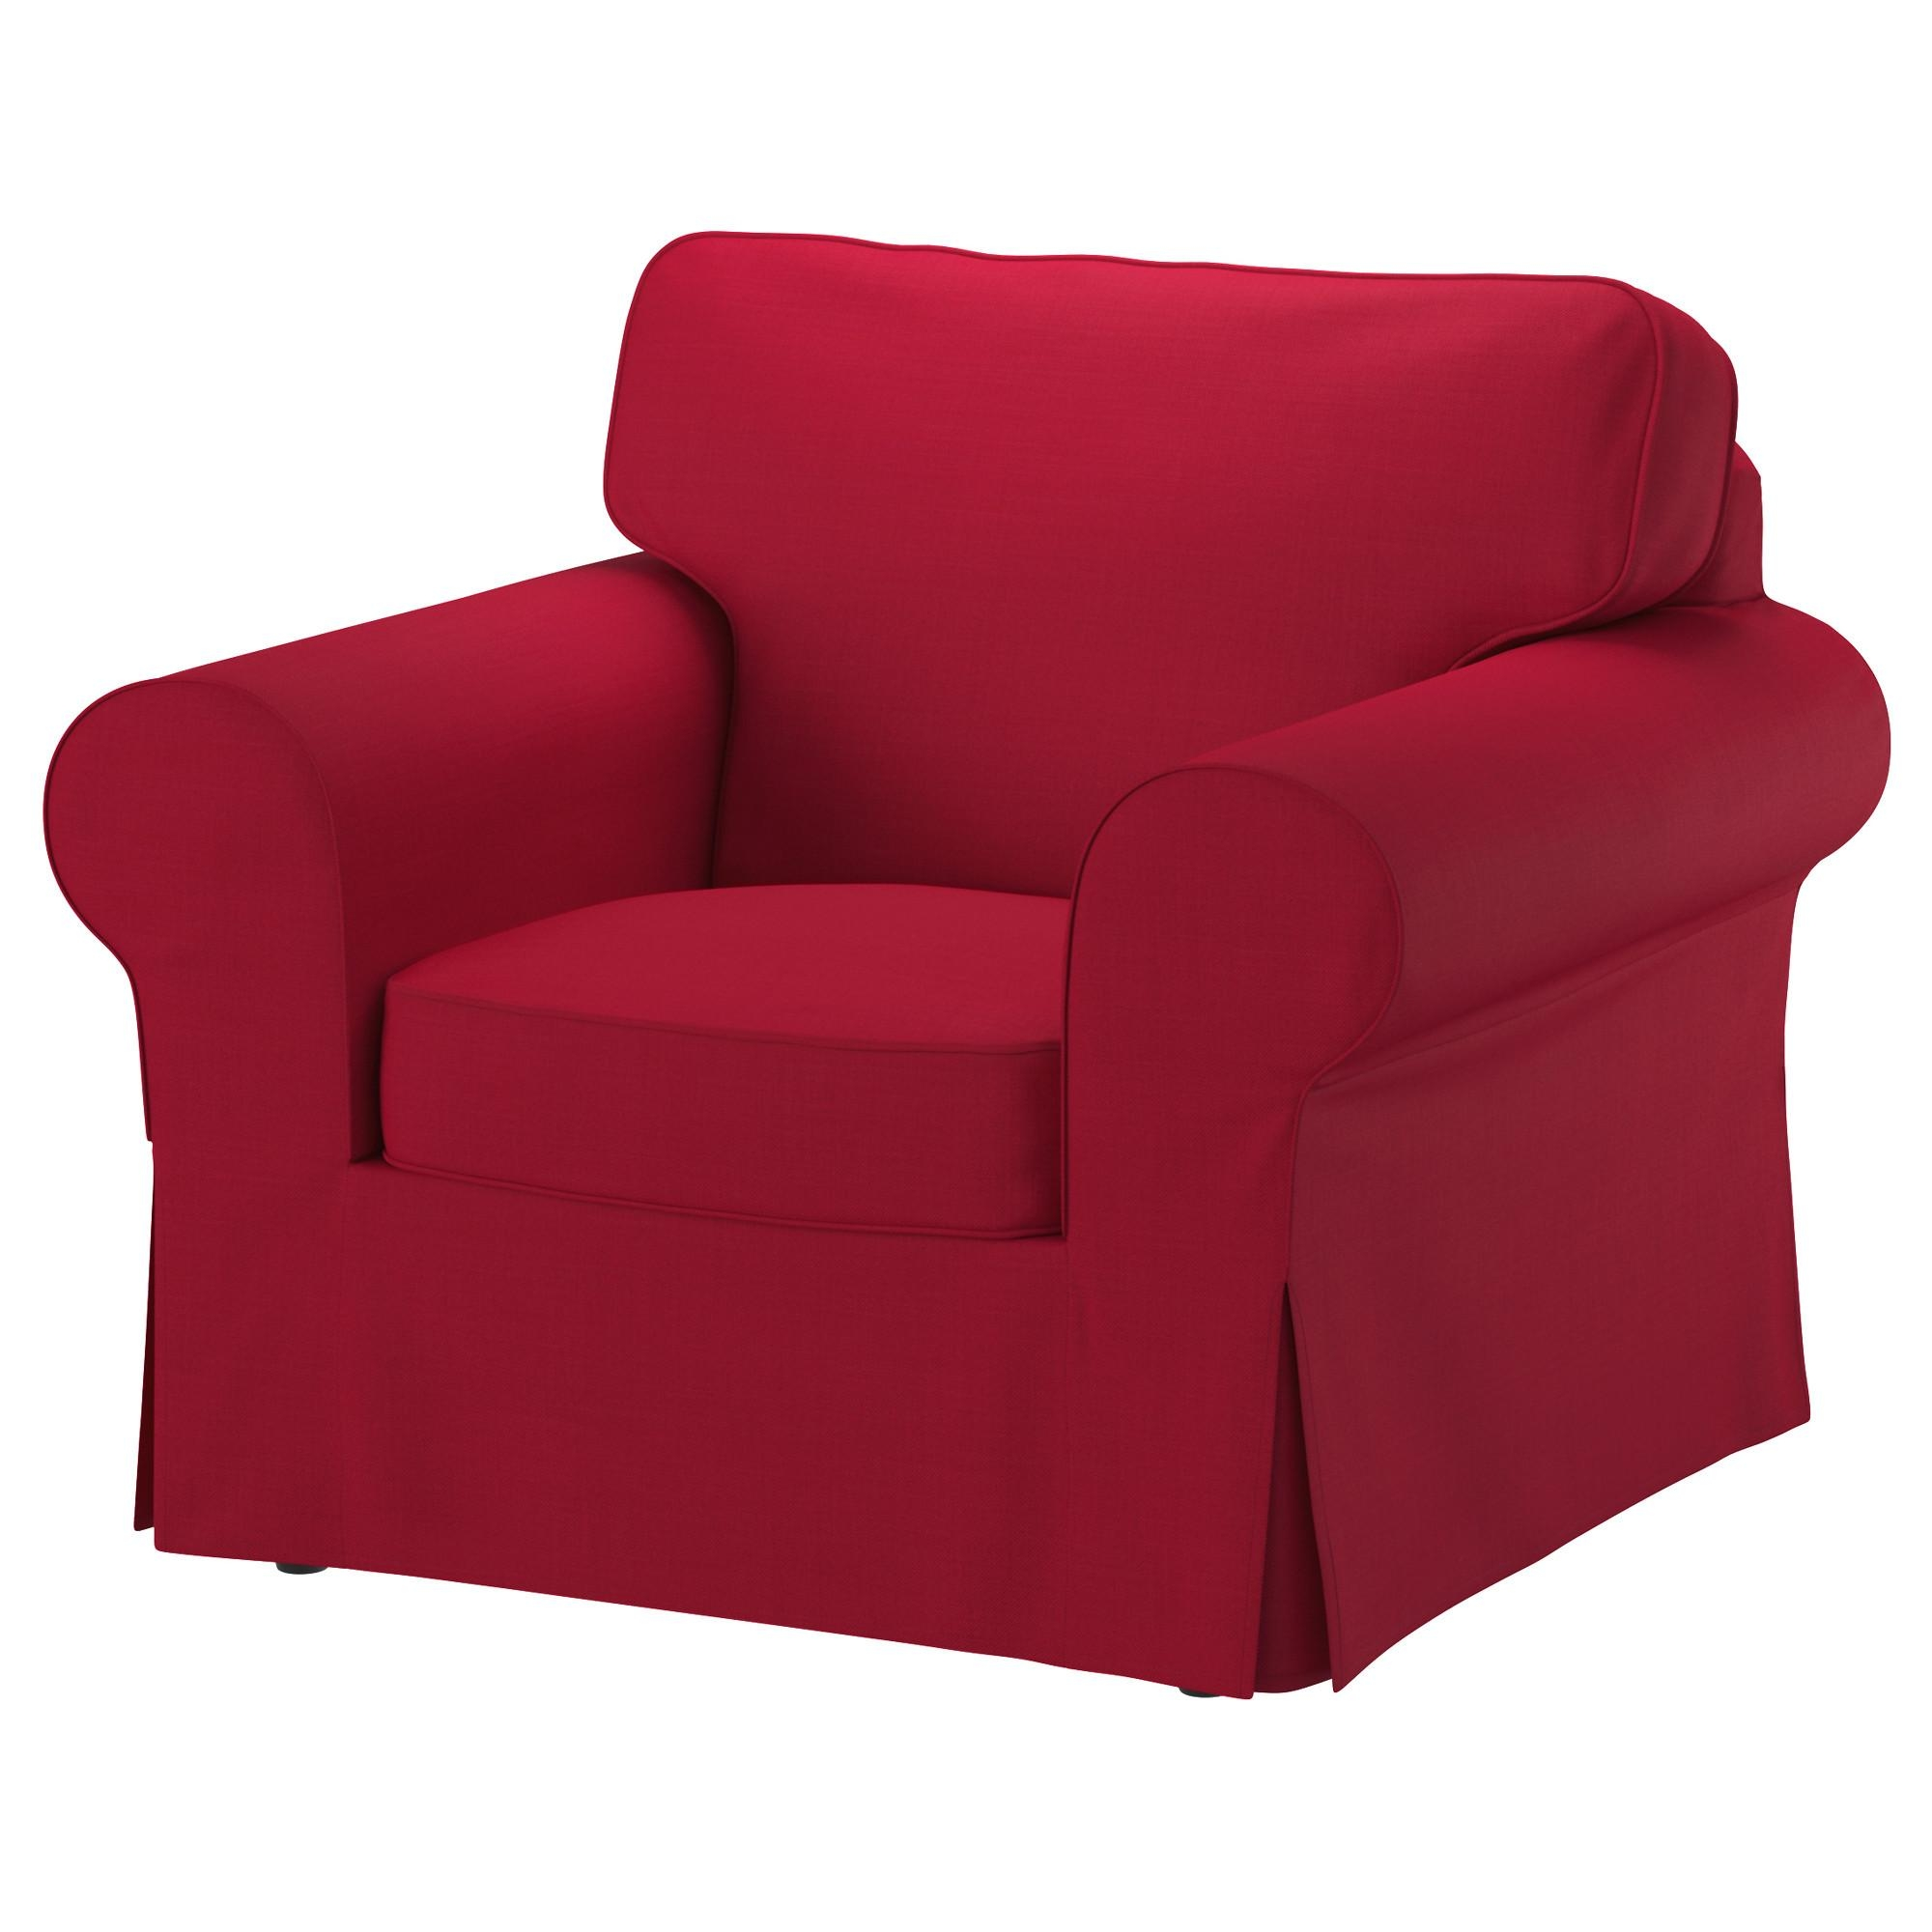 Furniture: Give Your Sofa Fresh New Look With Ikea Ektorp Chair Within Slipcovers For Chairs And Sofas (View 20 of 20)